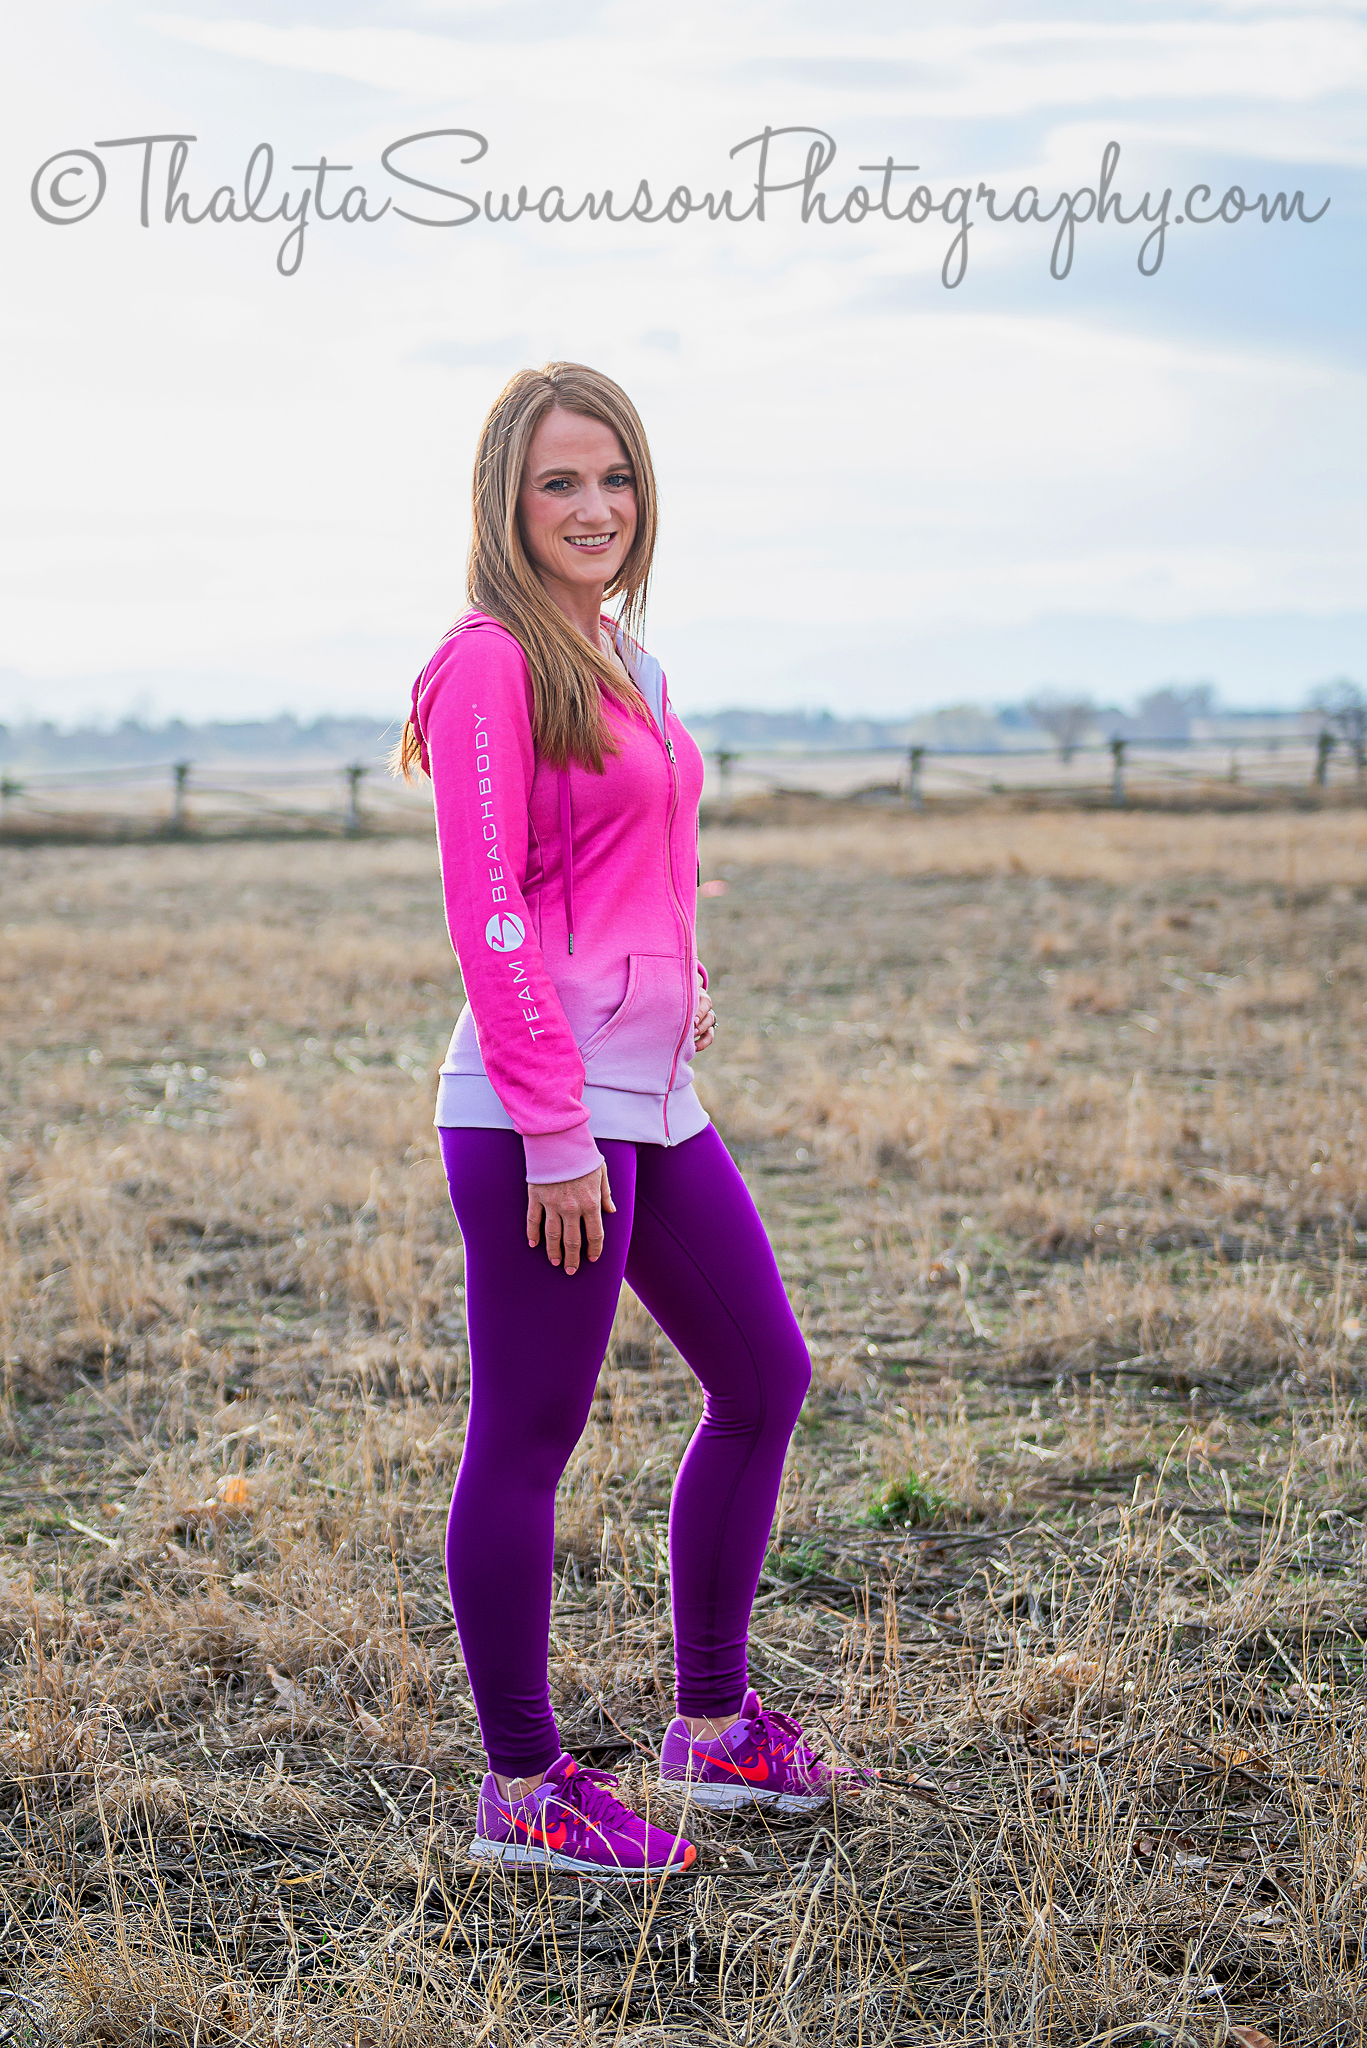 Thalyta Swanson Photography - Fitness Photos (14)